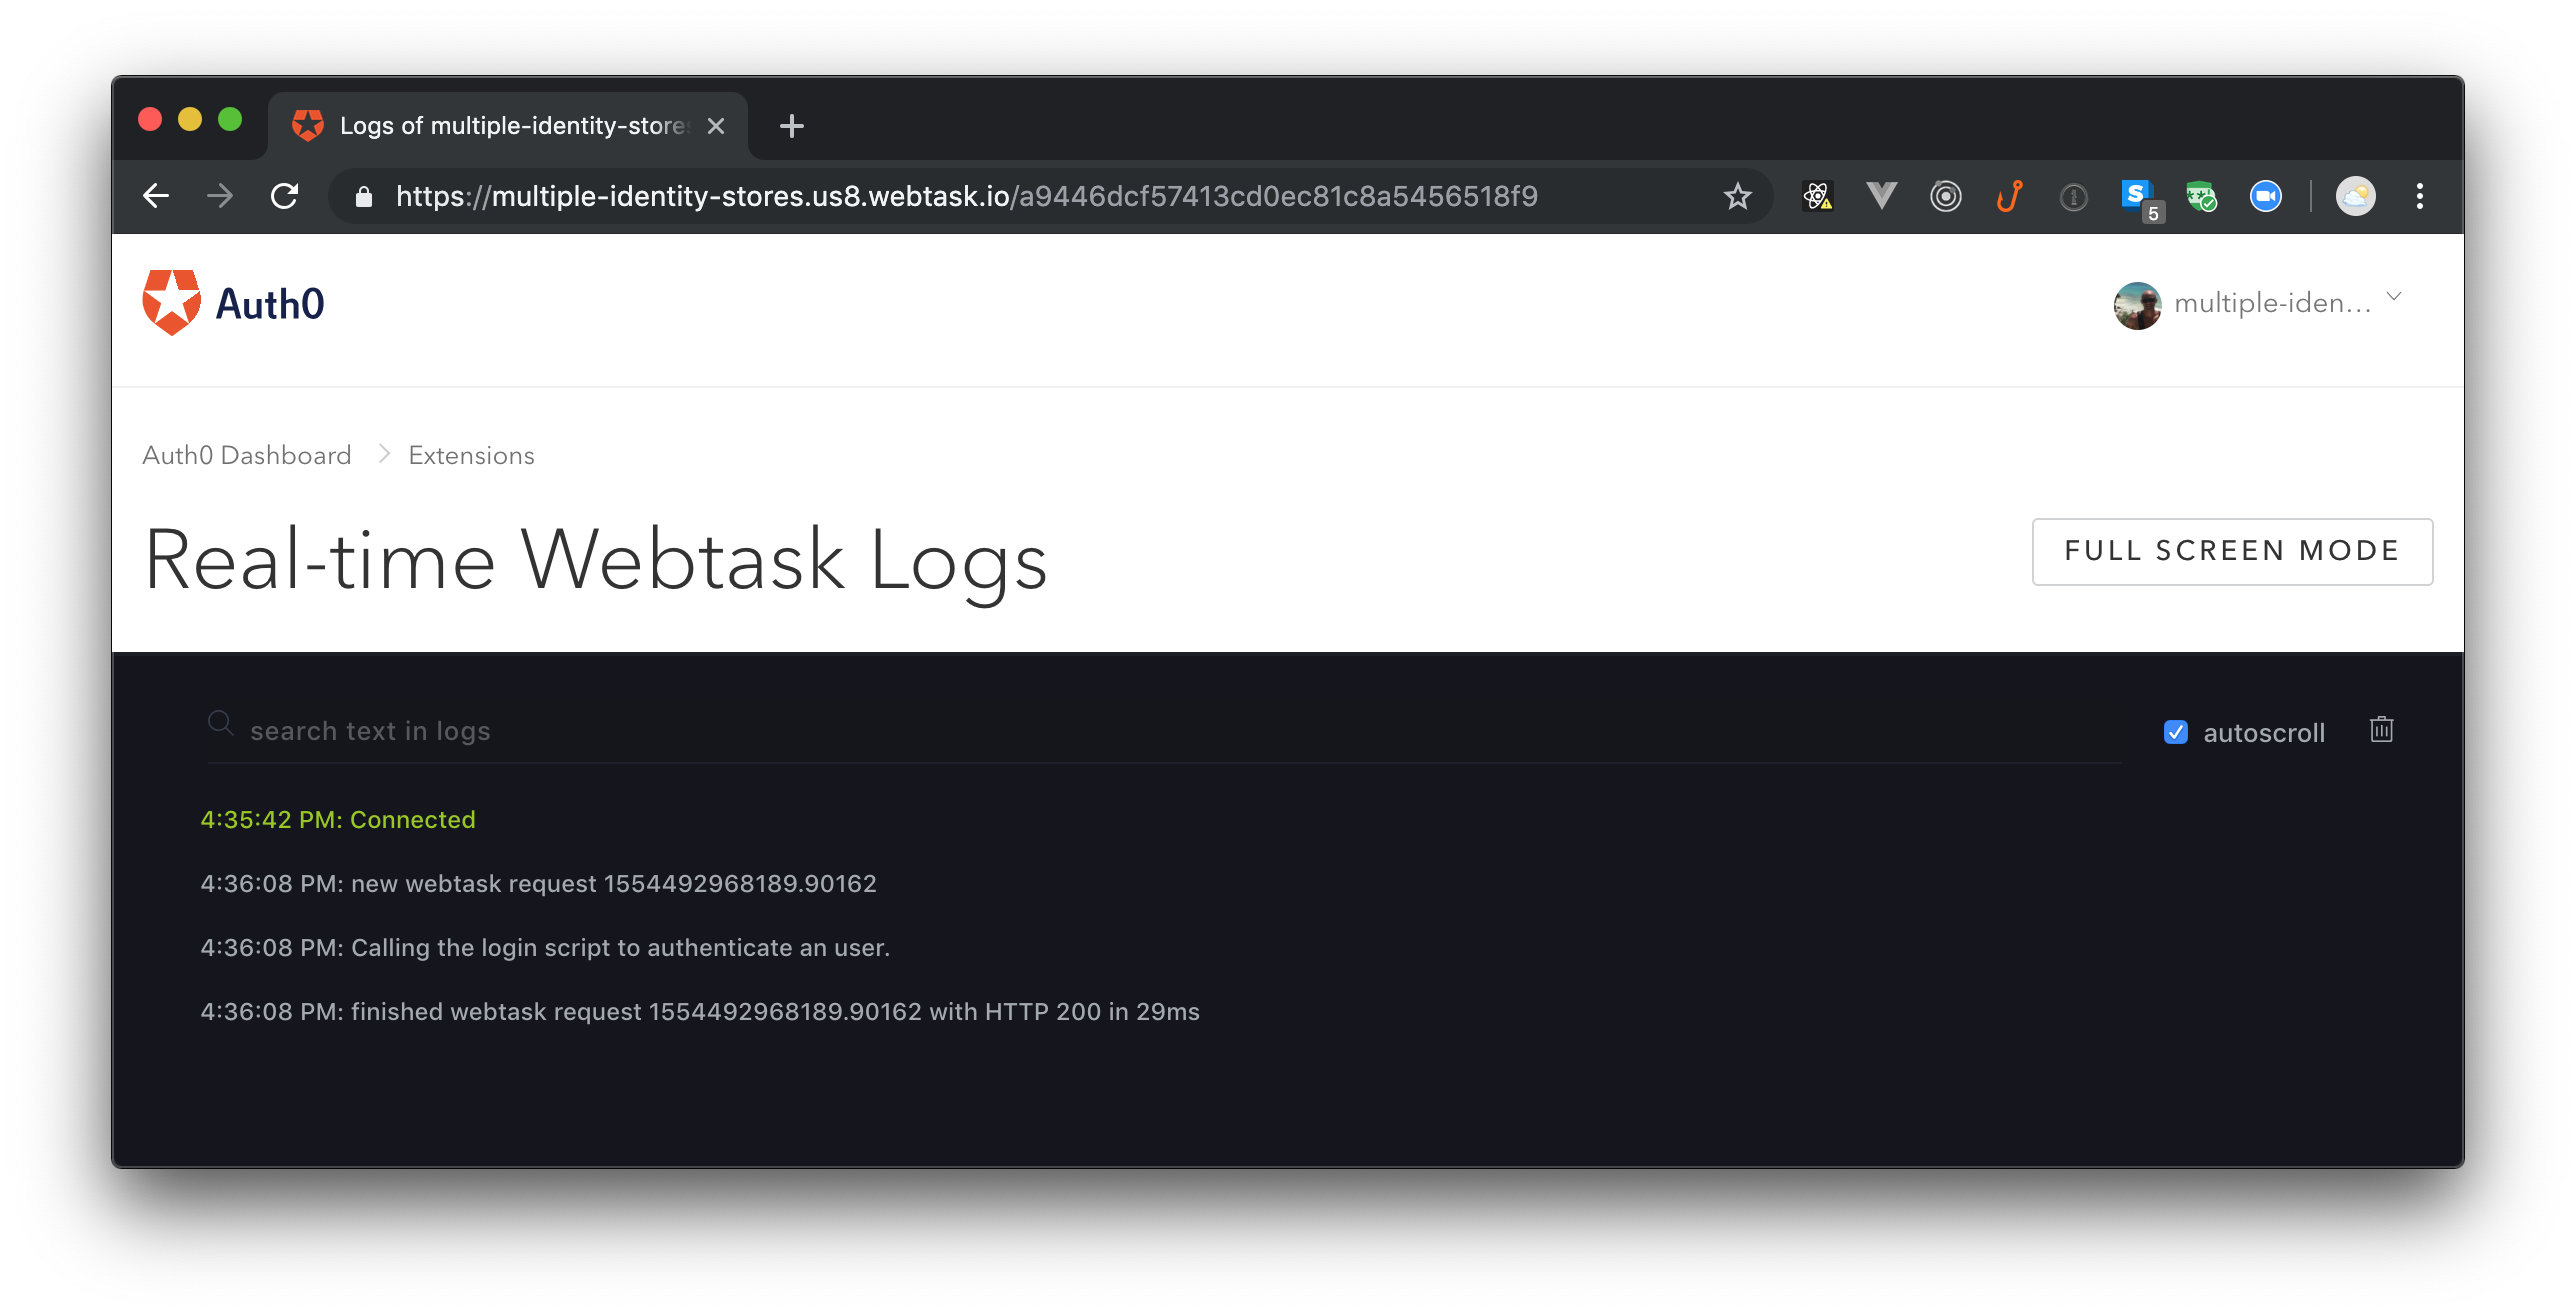 Troubleshooting custom database connections on Auth0 with Real-time Webtask Logs.